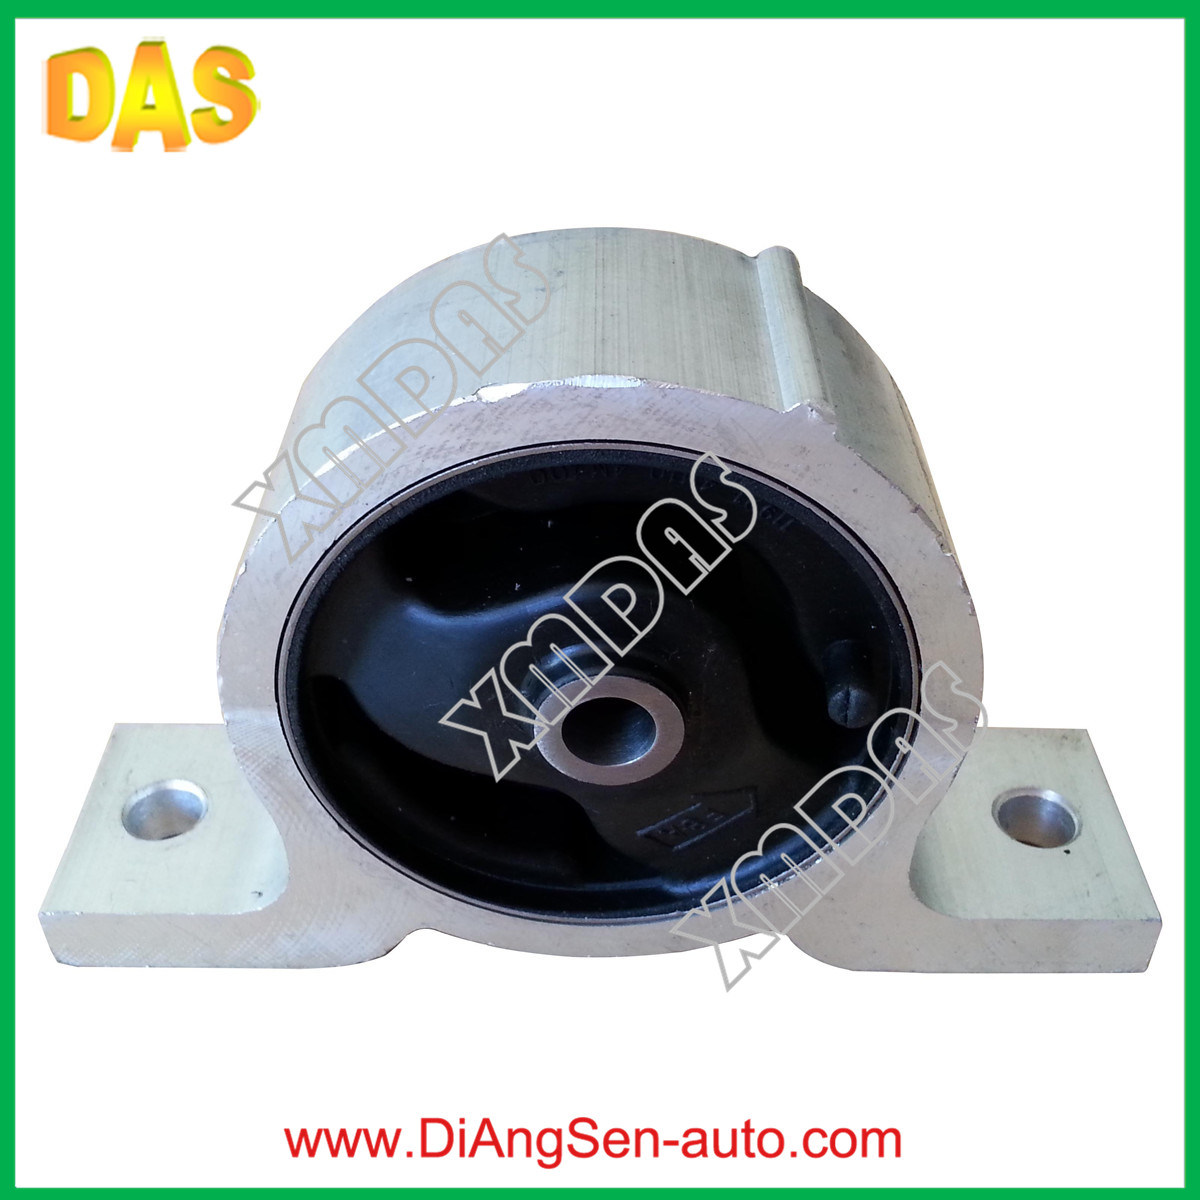 Auto Spare Parts Rubber Engine Motor Mount for Nissan Sentra (11211-0N000, 11220-4M412, 11221-4M400, 11320-4M400)